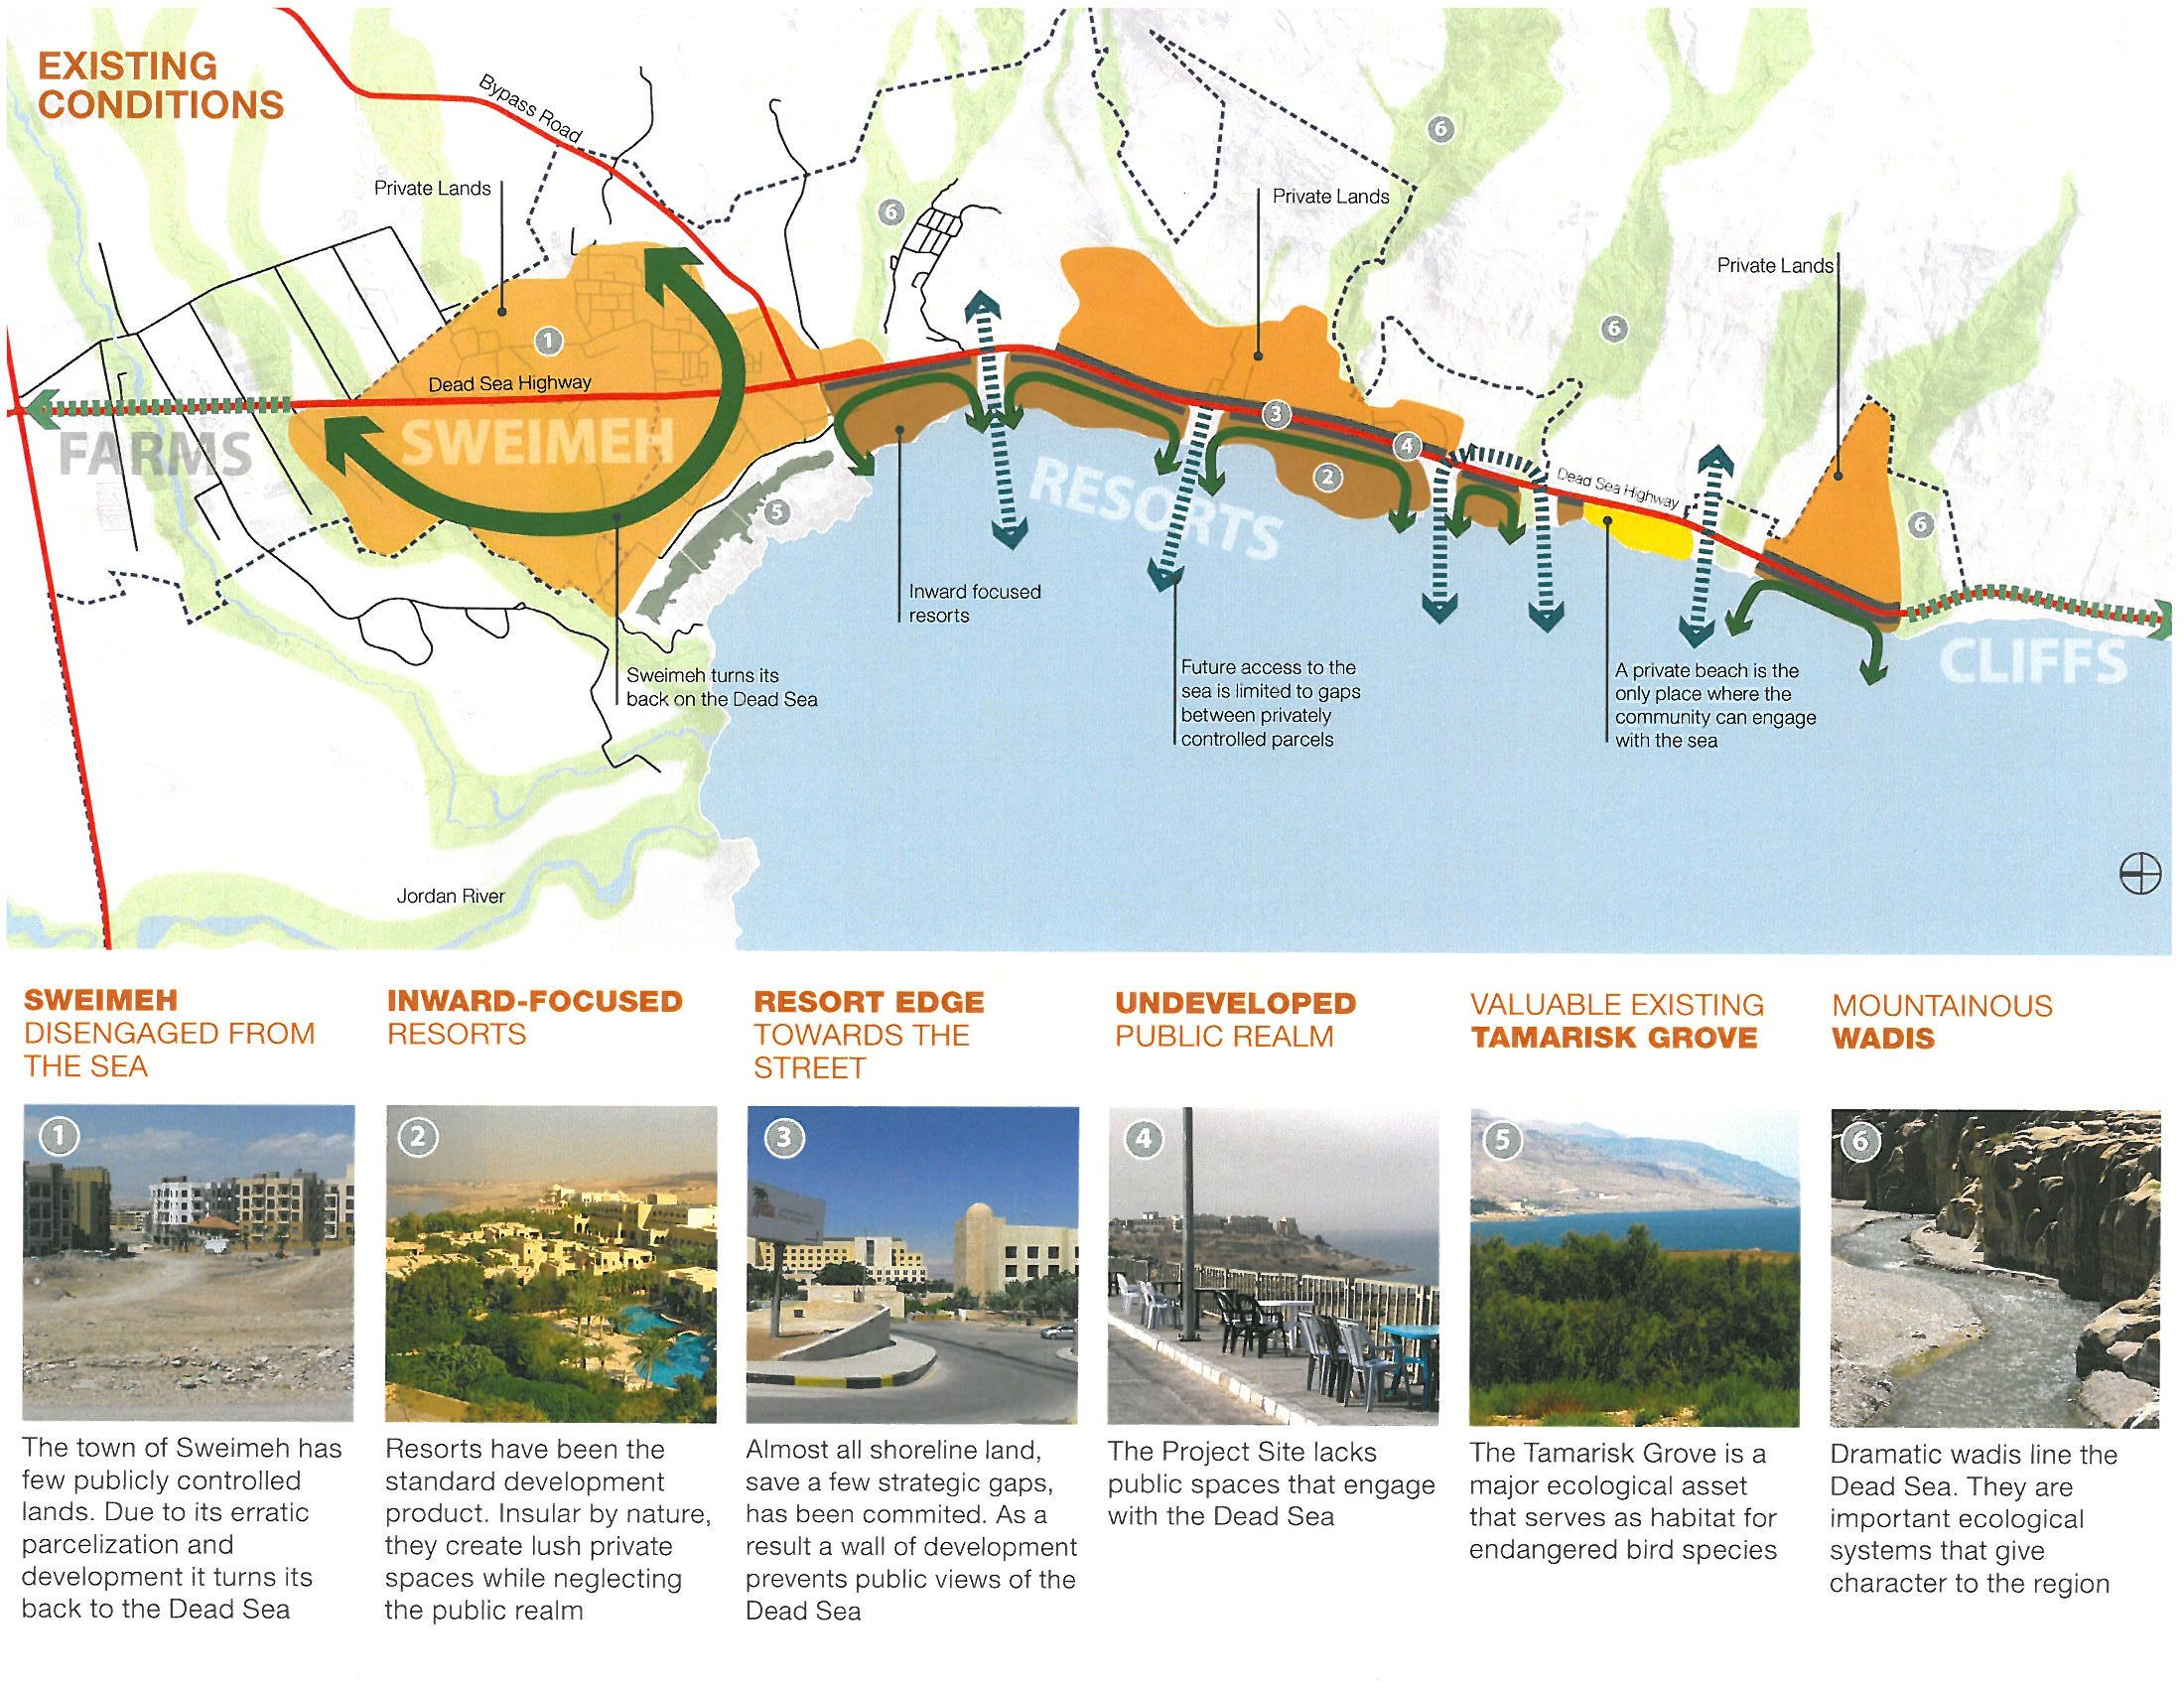 Asla 2012 professional awards a strategic masterplan for for Planning on line